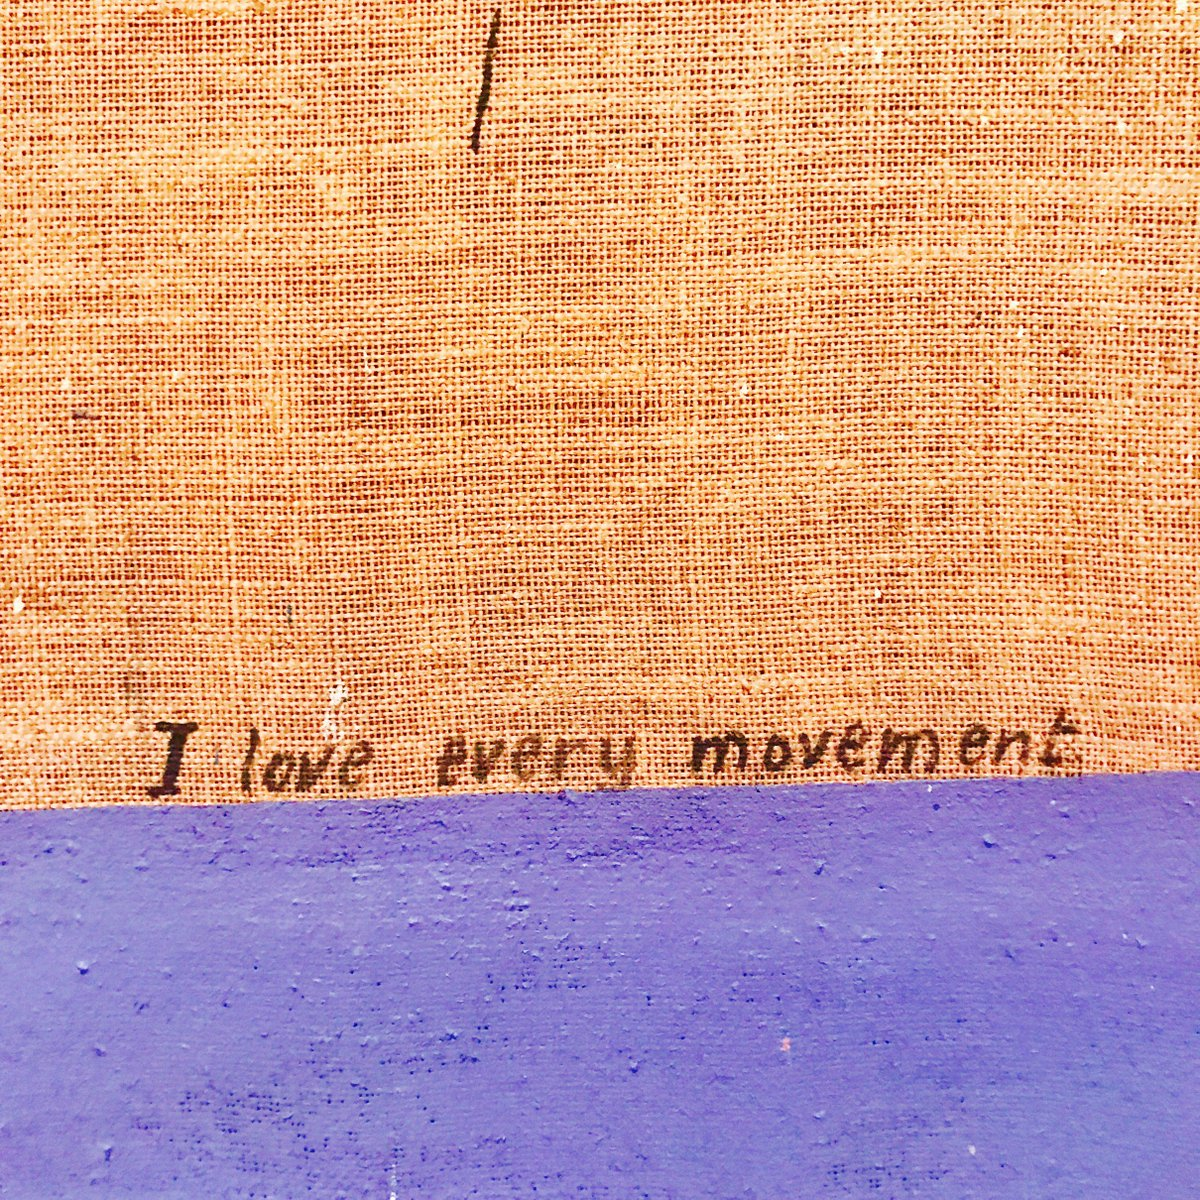 I love everything Hockney says and sees... x Stella #TBT https://t.co/gWMAdiRnbx